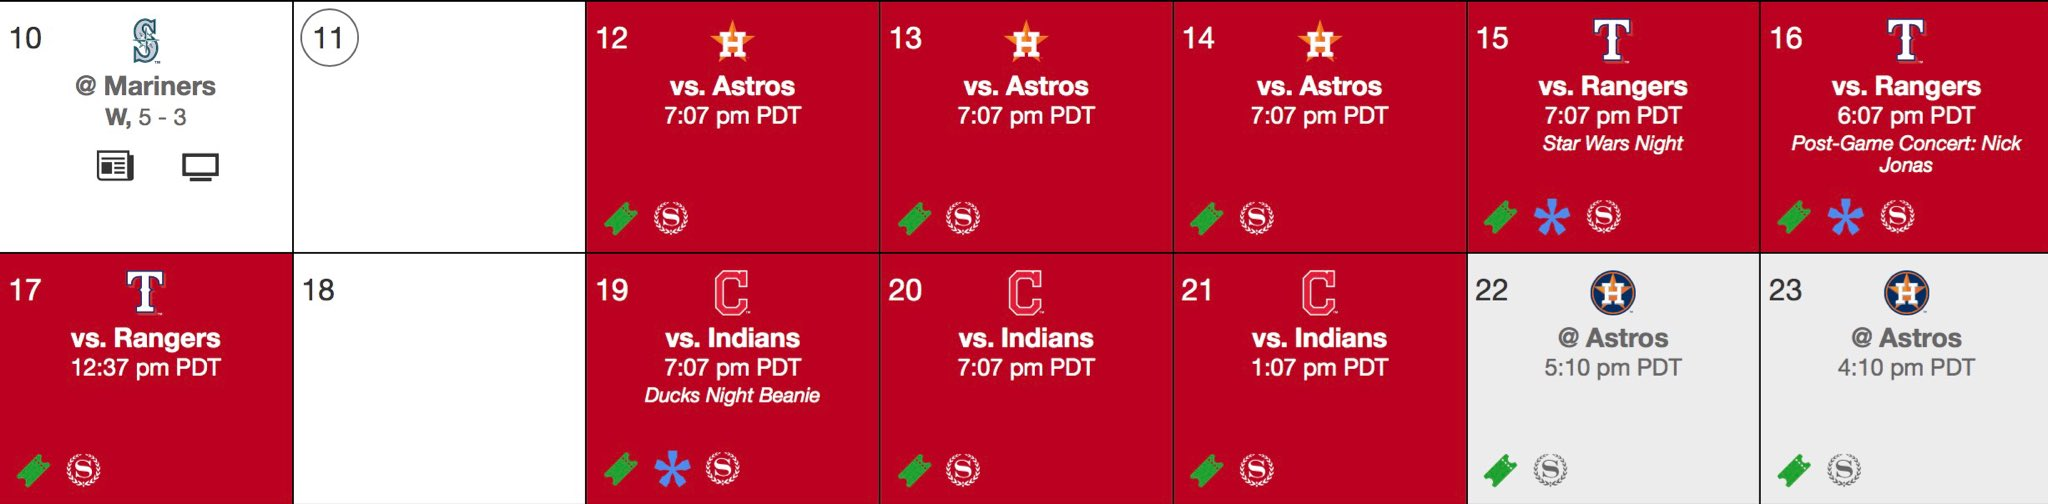 It's crunch time #Angels fans! #EveryGameMatters this homestand: https://t.co/Vlrun7WY6l https://t.co/IEfNwIDGLh